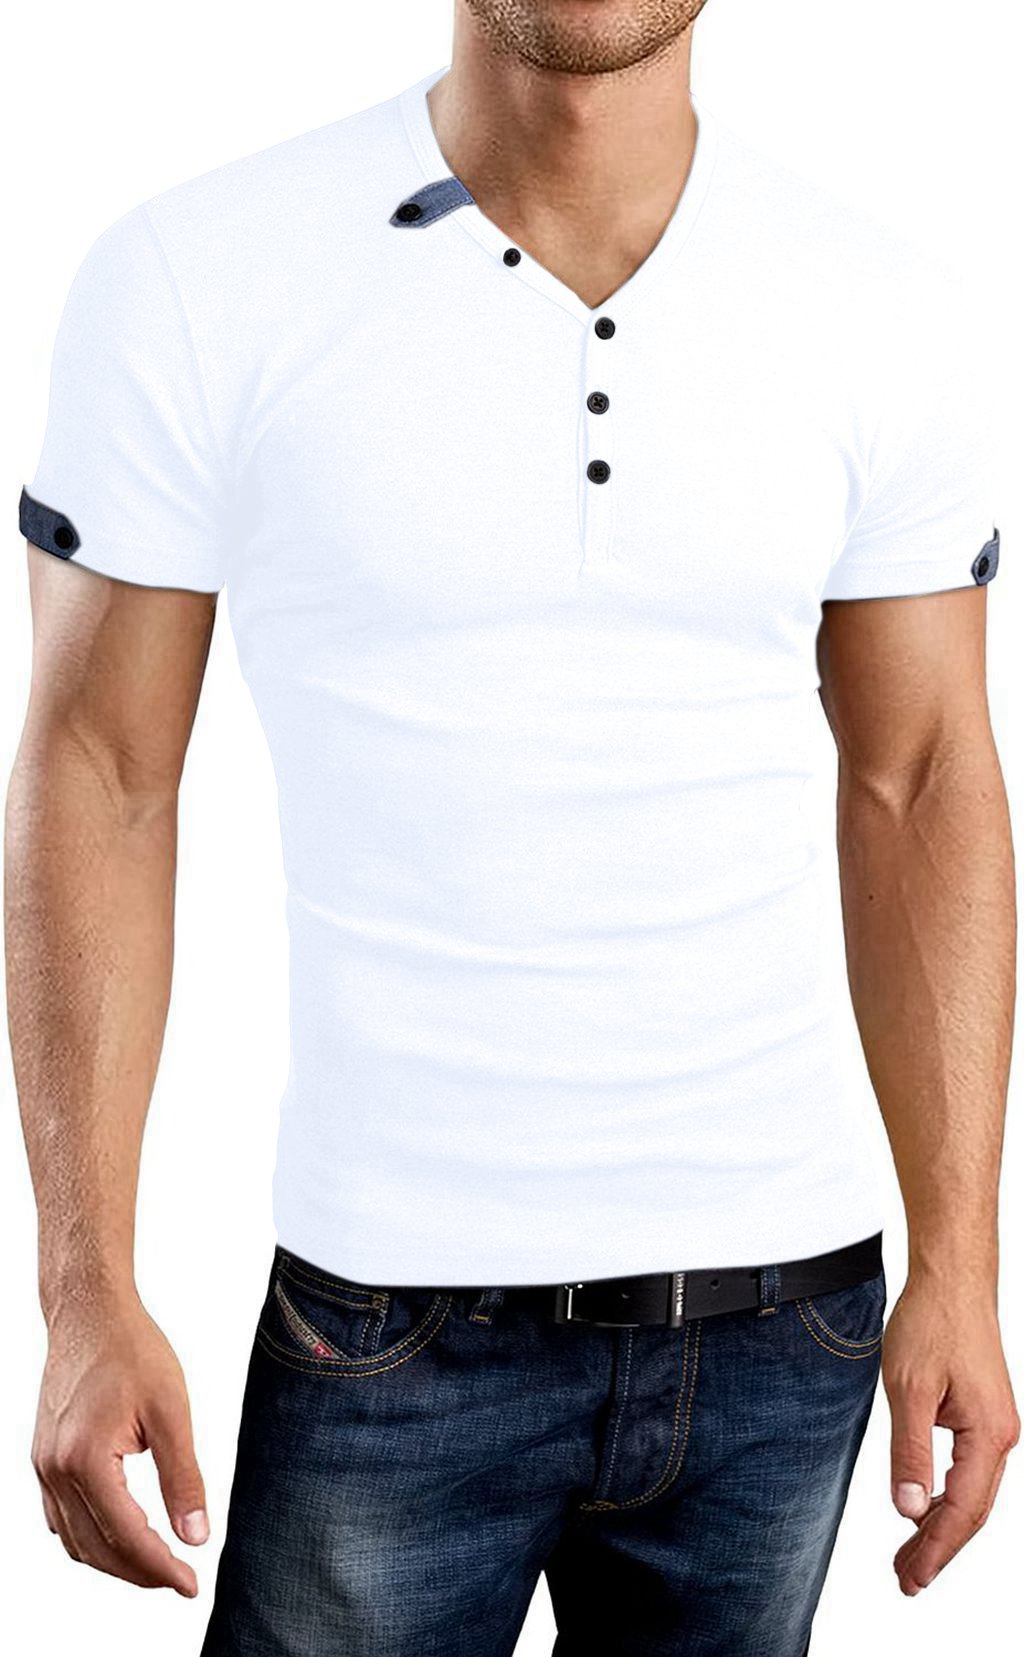 Aiyino Mens Summer Casual V-Neck Button Cuffs Cardigan Short Sleeve T-Shirts (US L, White)